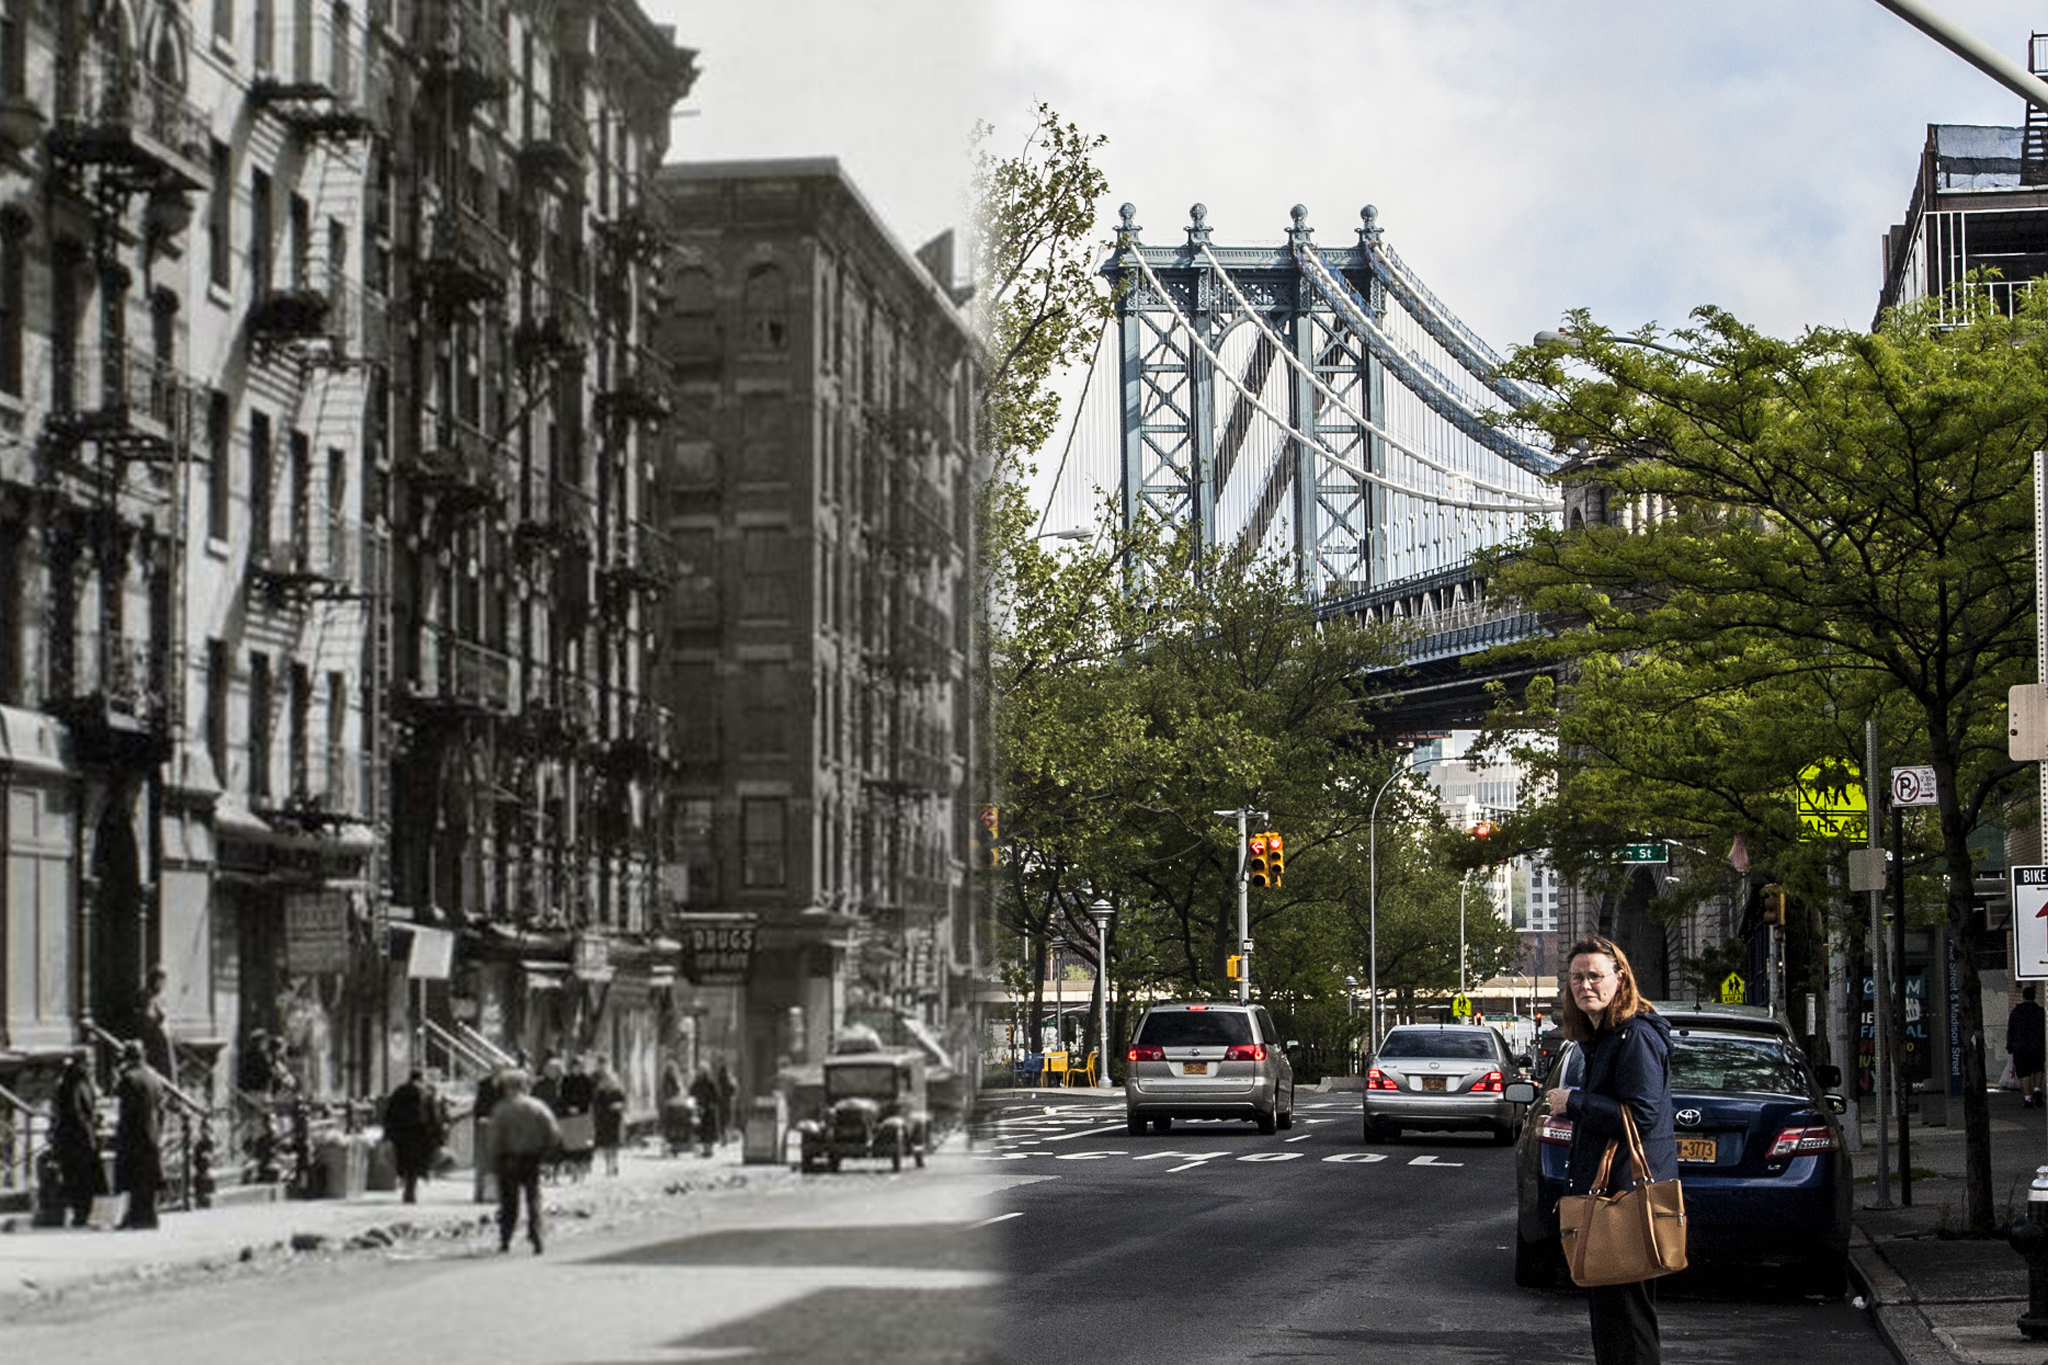 Compare vintage NYC street scenes with their modern counterparts